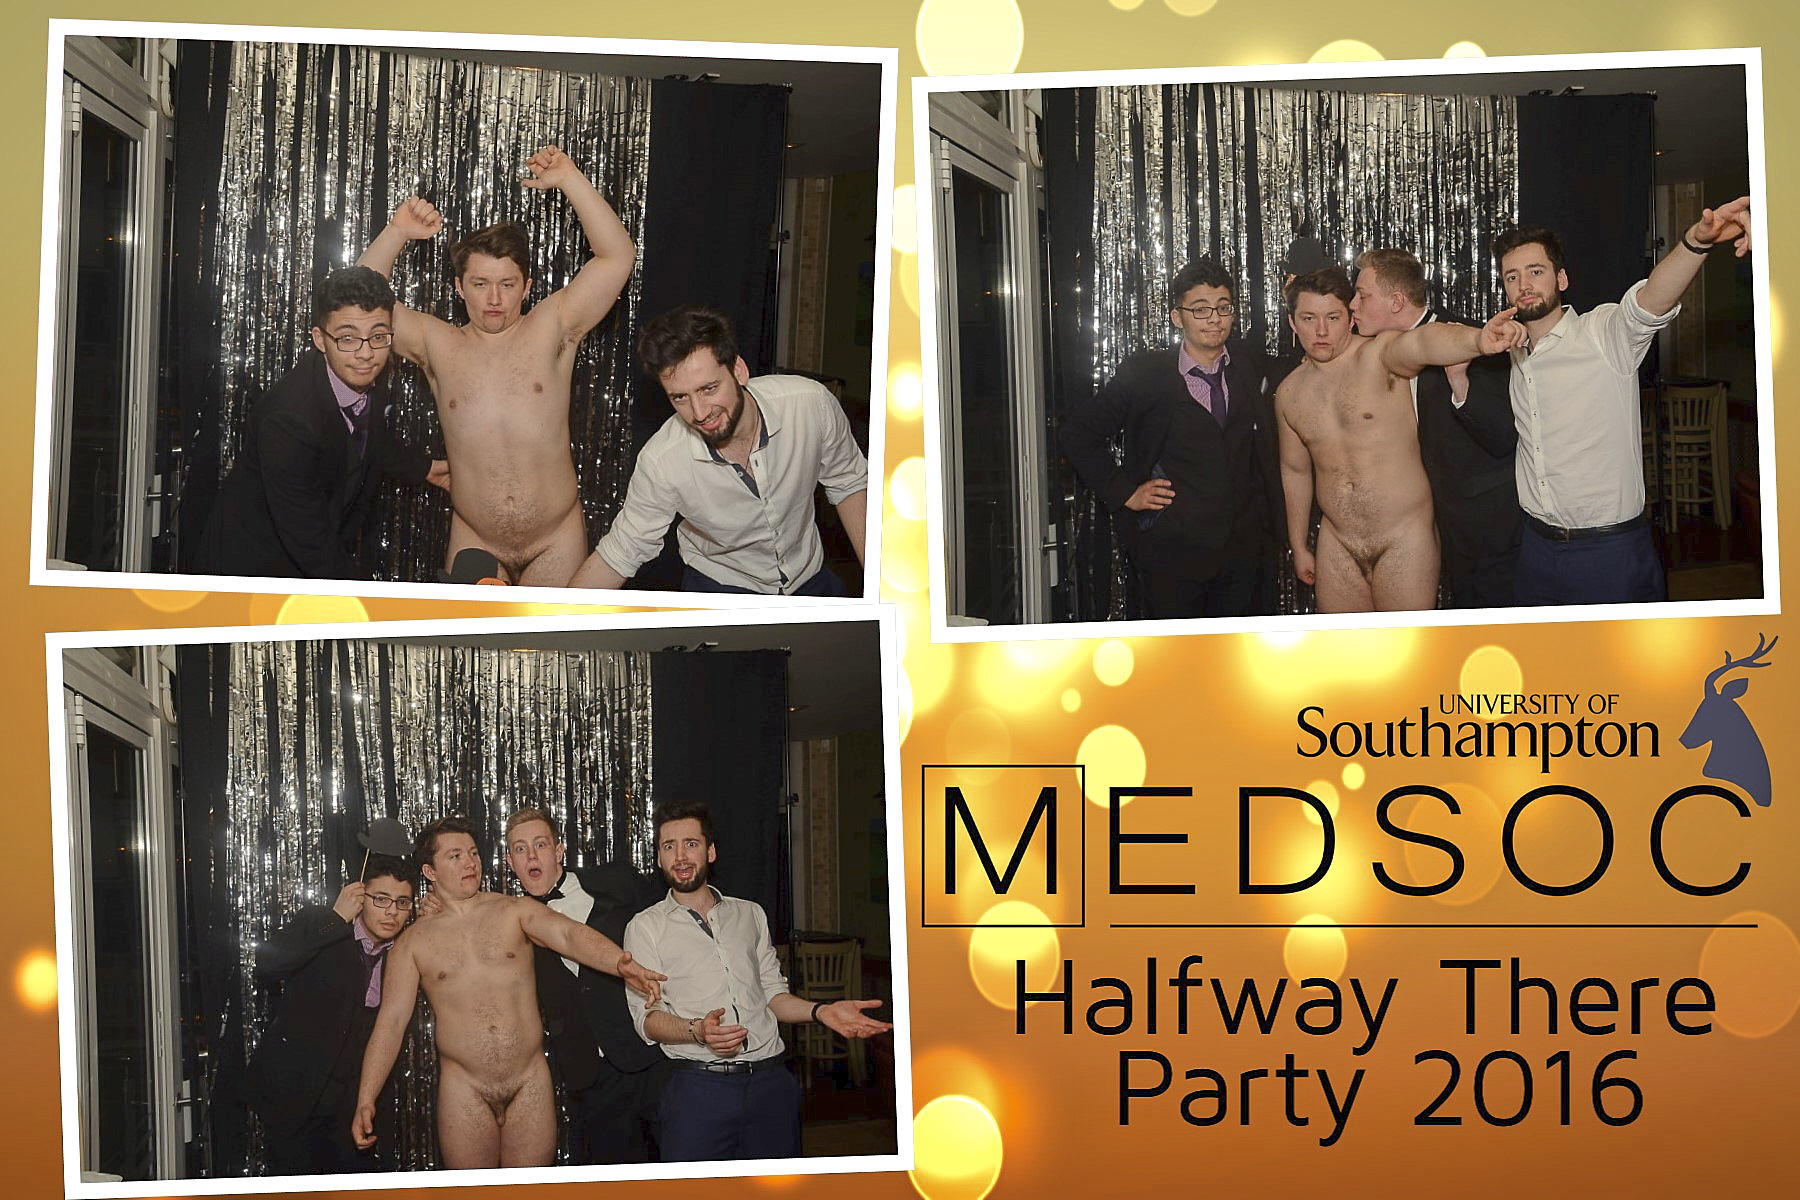 MedSoc Halfway There Party 2016 DS012914.jpg